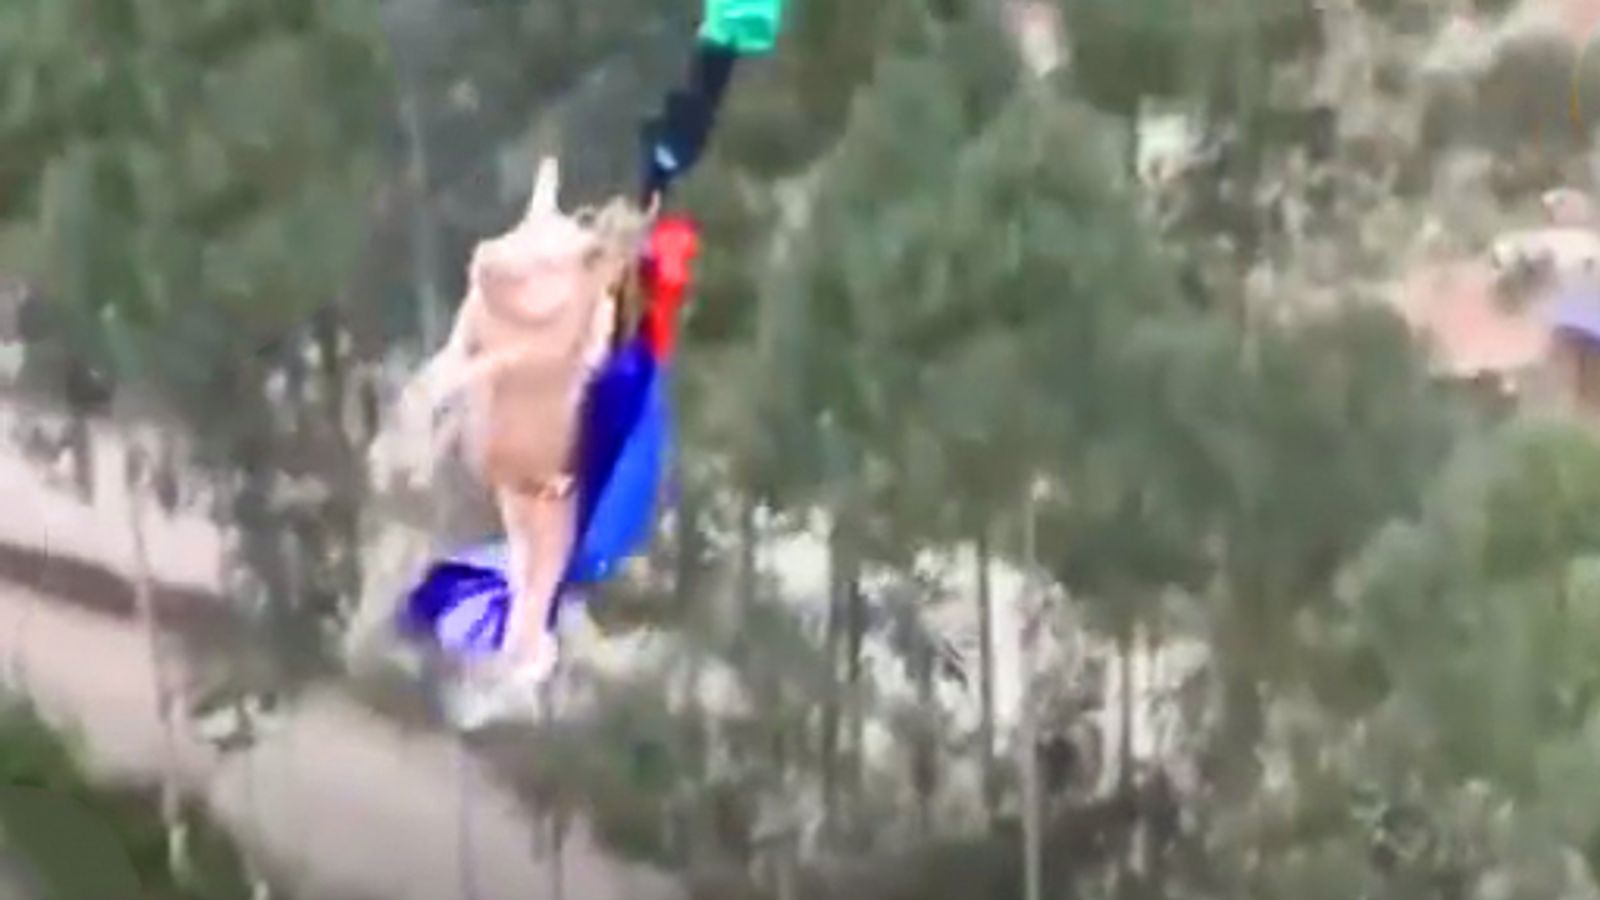 Pig forced to bungee jump in 'disgusting' theme park stunt